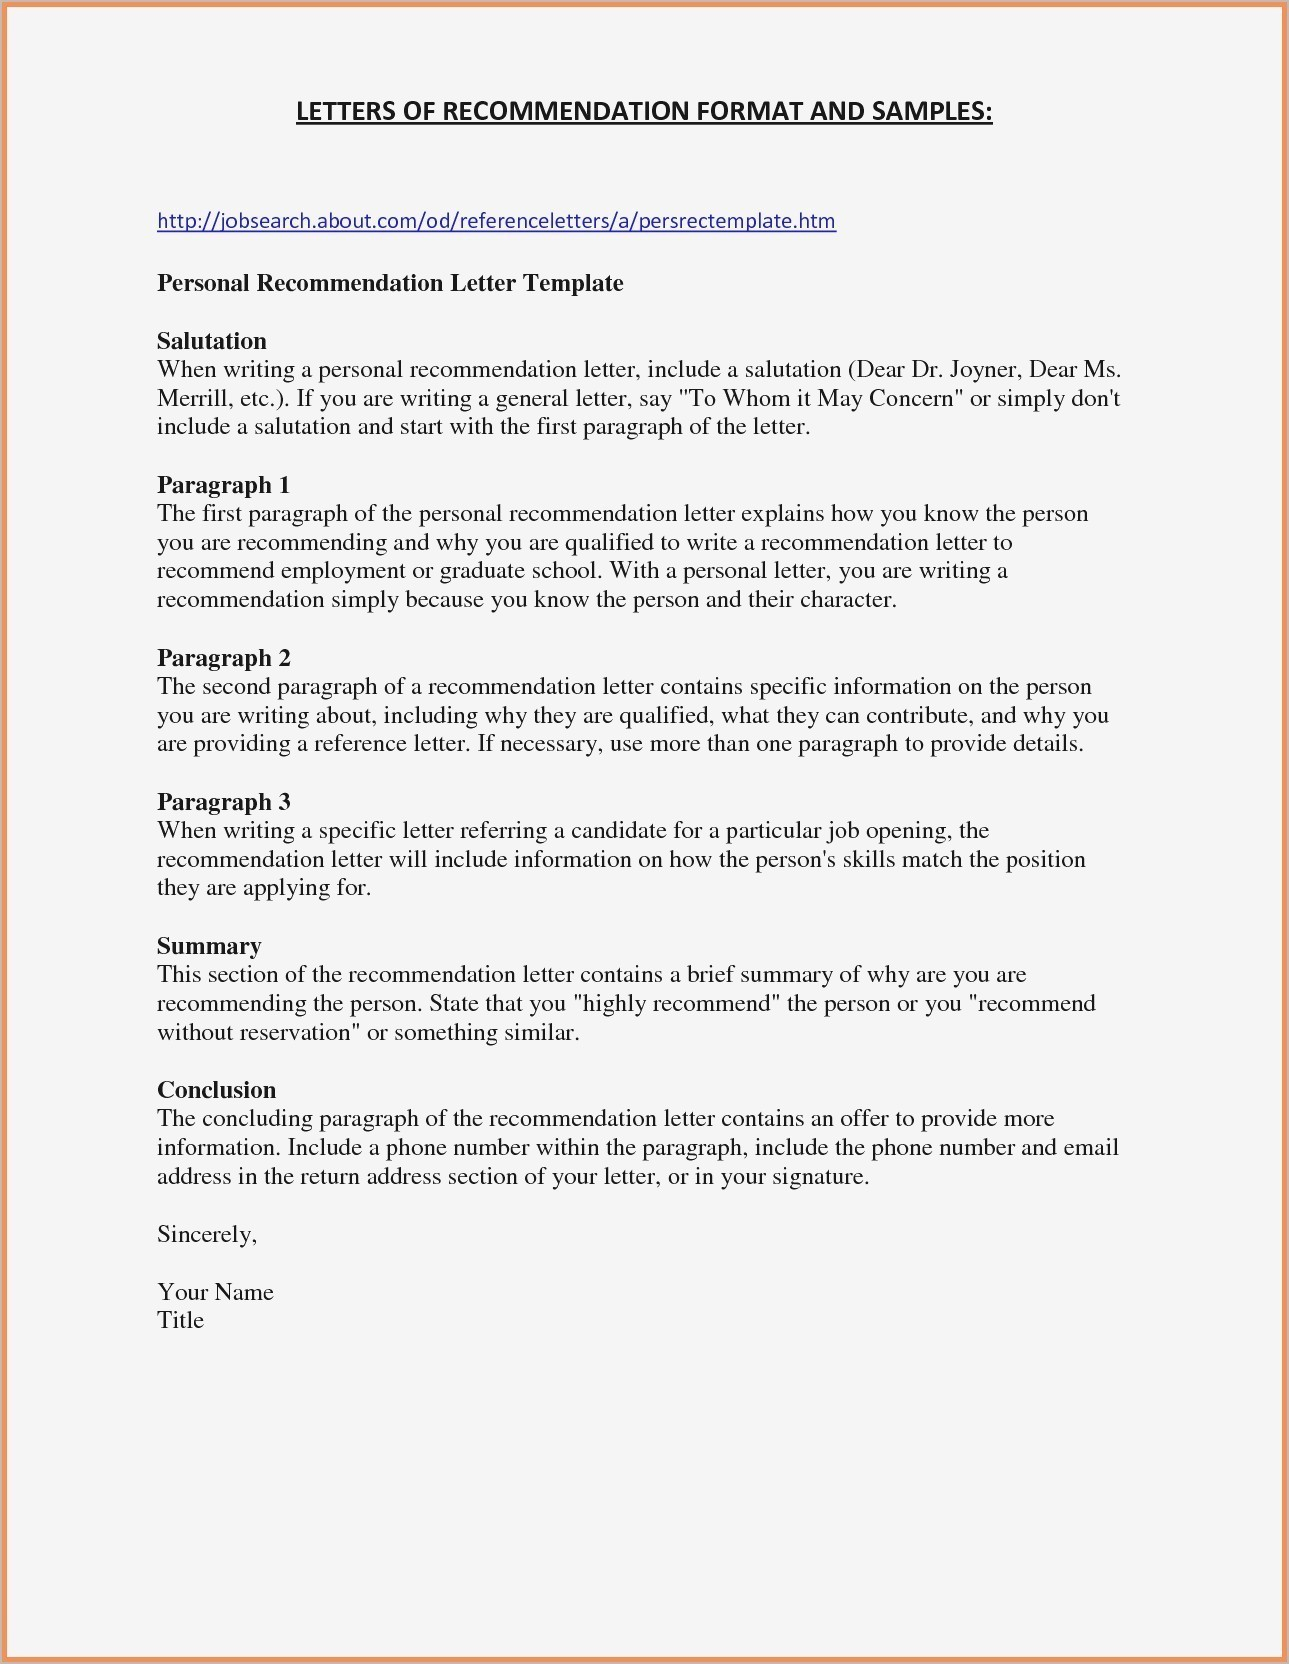 Personal Recommendation Letter Template - Job Re Mendation Letter Samples Valid Sample Job Re Mendation